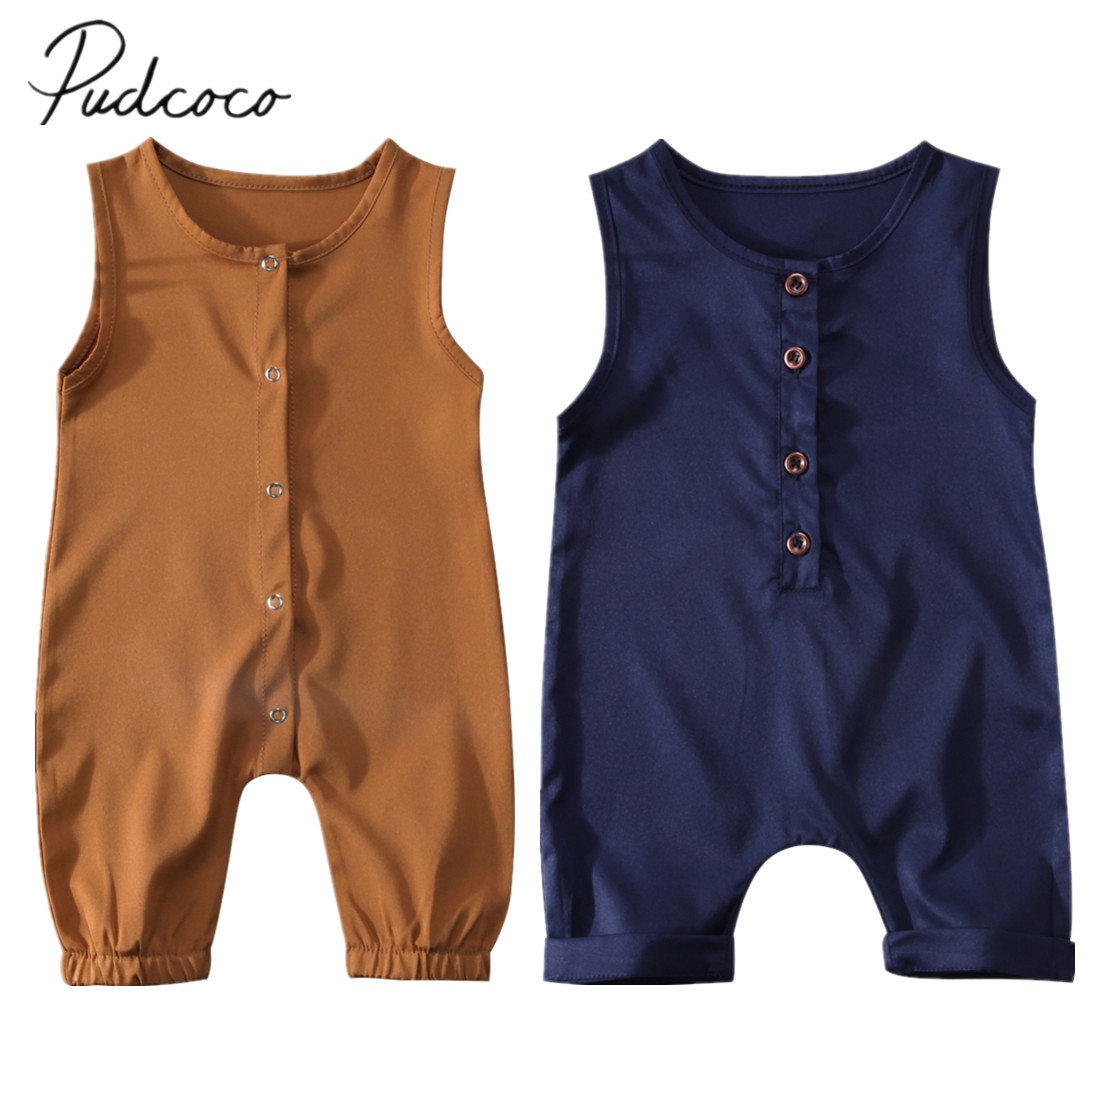 2018 Brand New Toddler Infant Newborn Kids Baby Girls Boys Summer   Romper   Solid Jumpsuit Sleeveless Clothes Brief Outfits